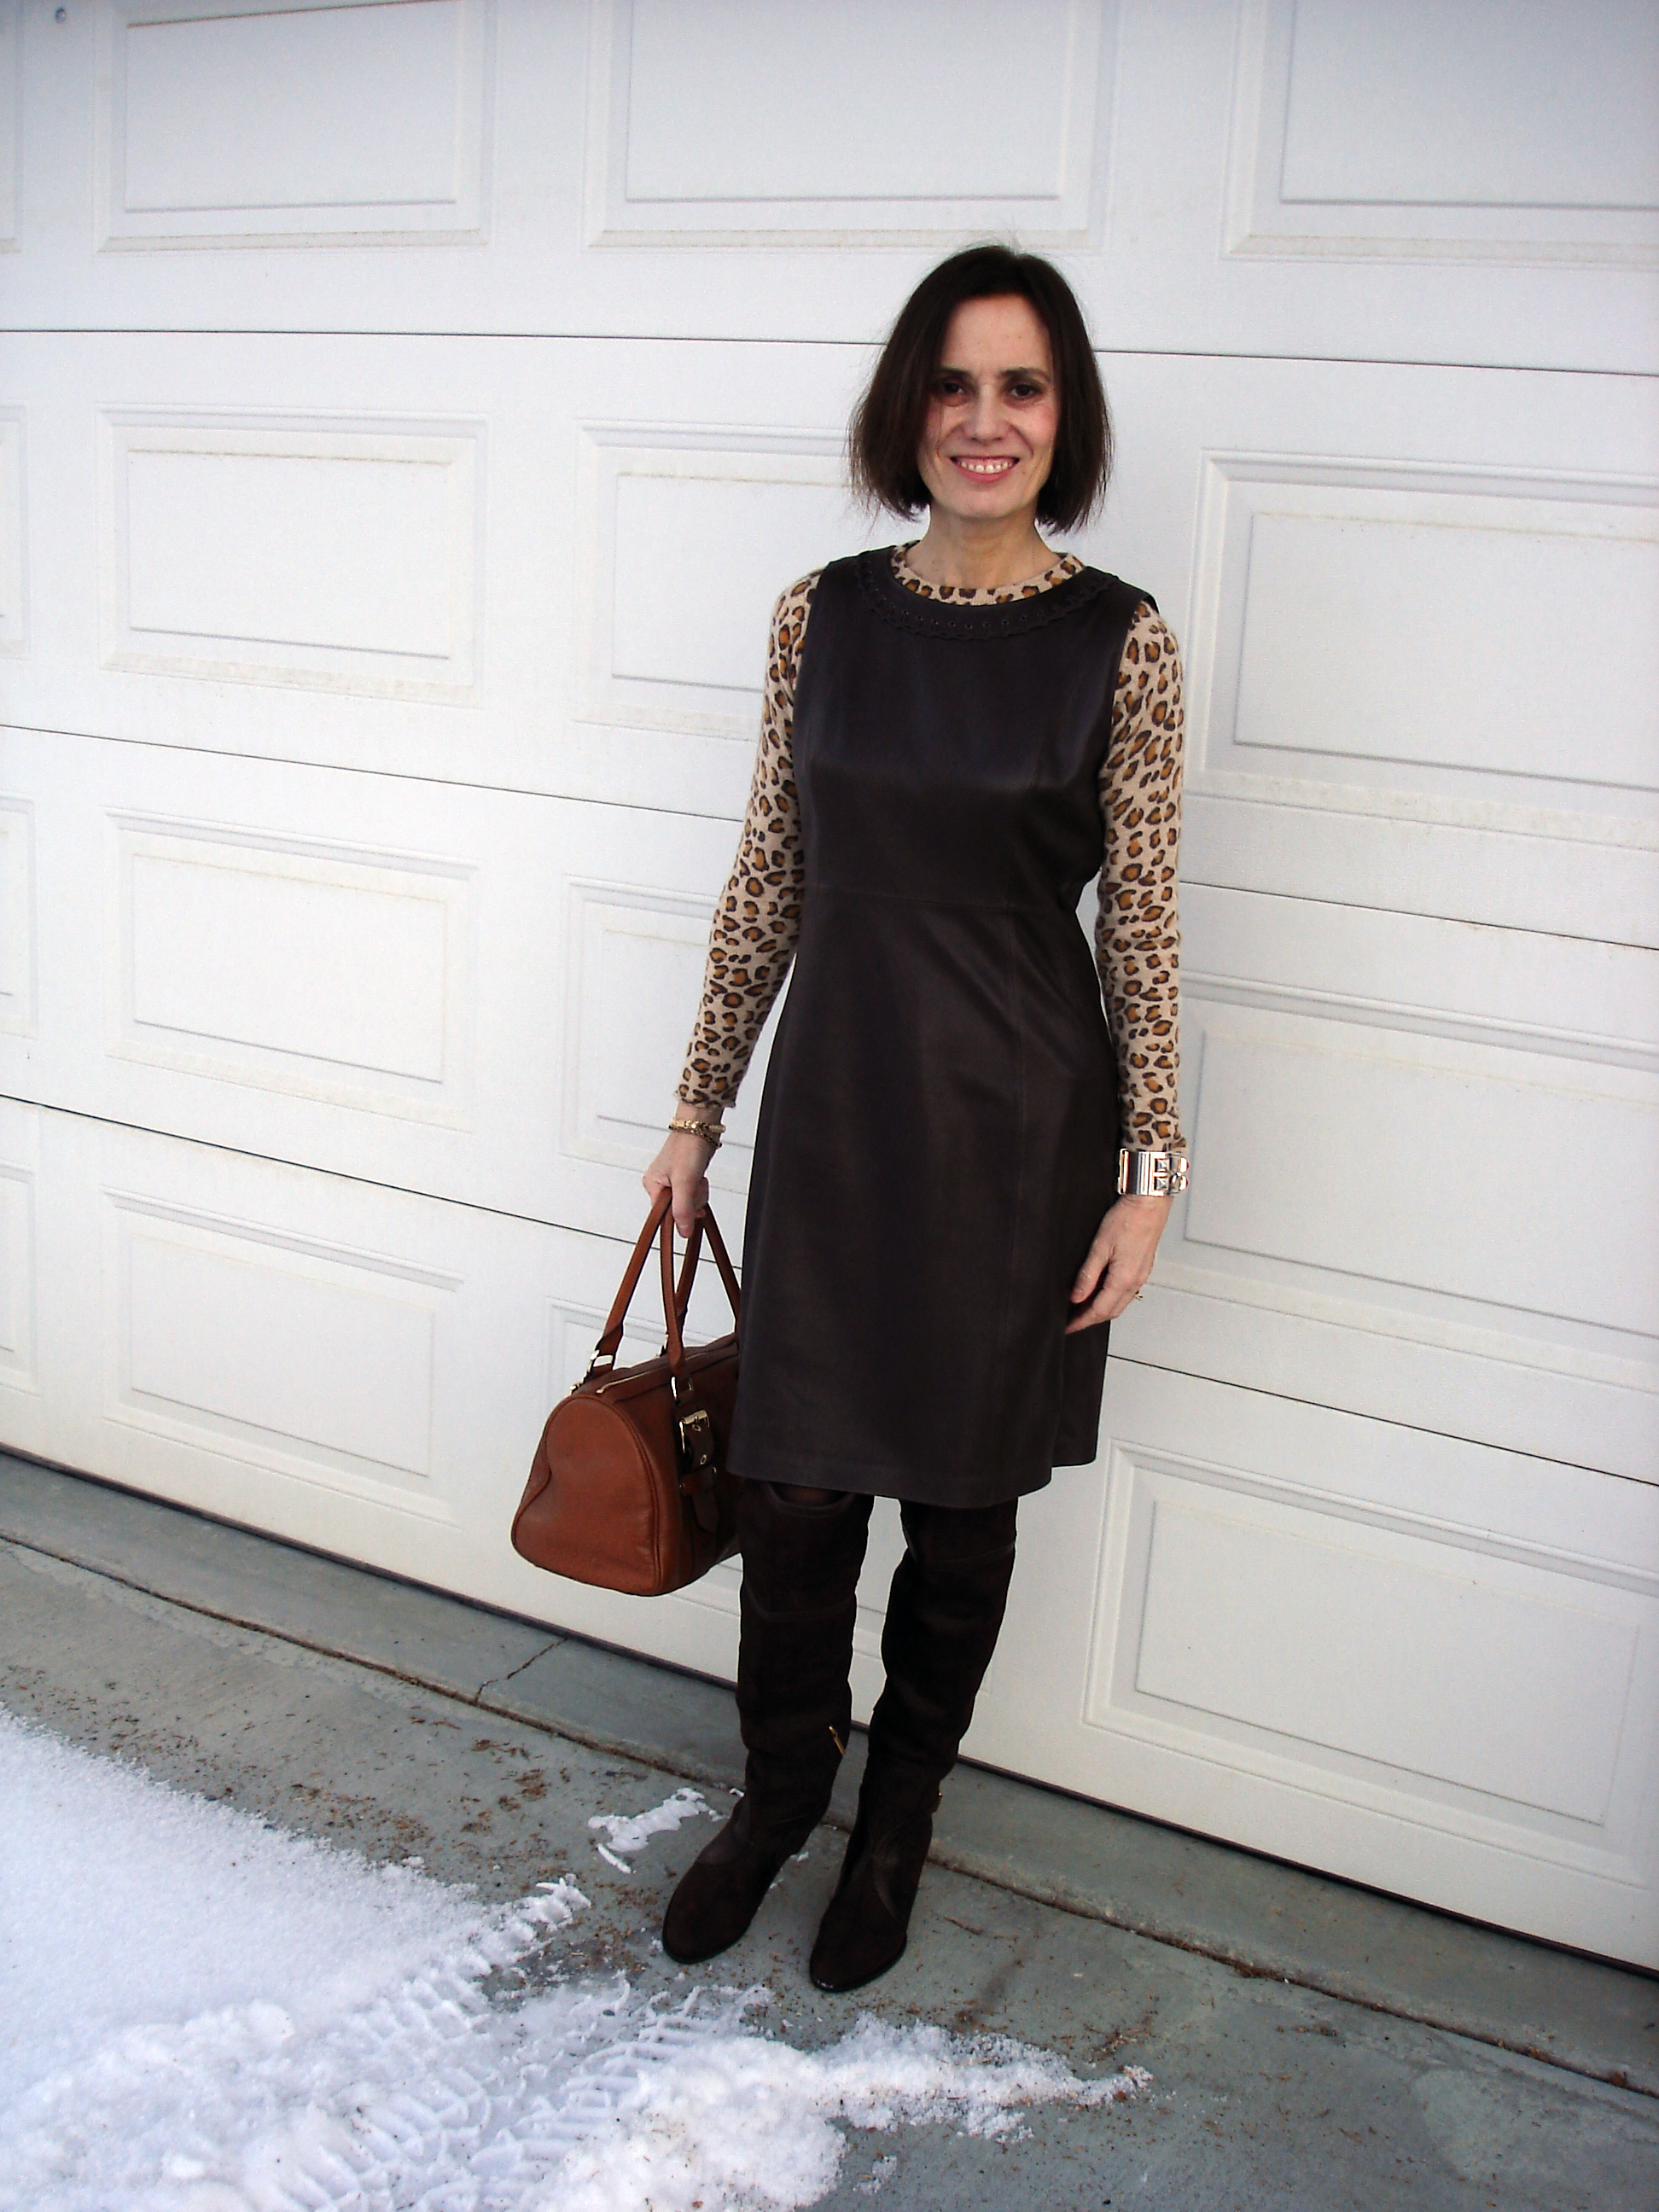 49fce0101e Cashmere leopard sweater, Eli Tahari sheath dress, Kate Moss for Longchamp  bag, GNW tights, and Dior over-the-knee boots (all own)